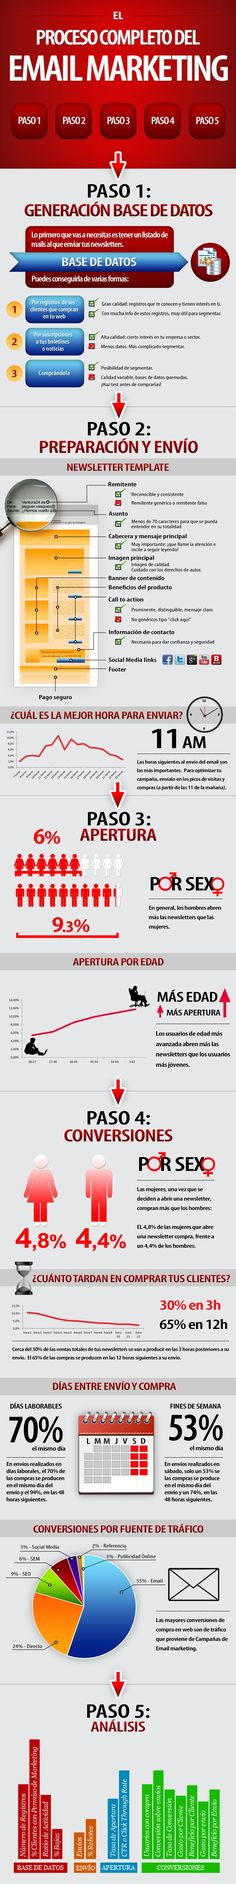 En esta infografía se describe el proceso completo del email marketing. www.emailmarketing1.com.mx